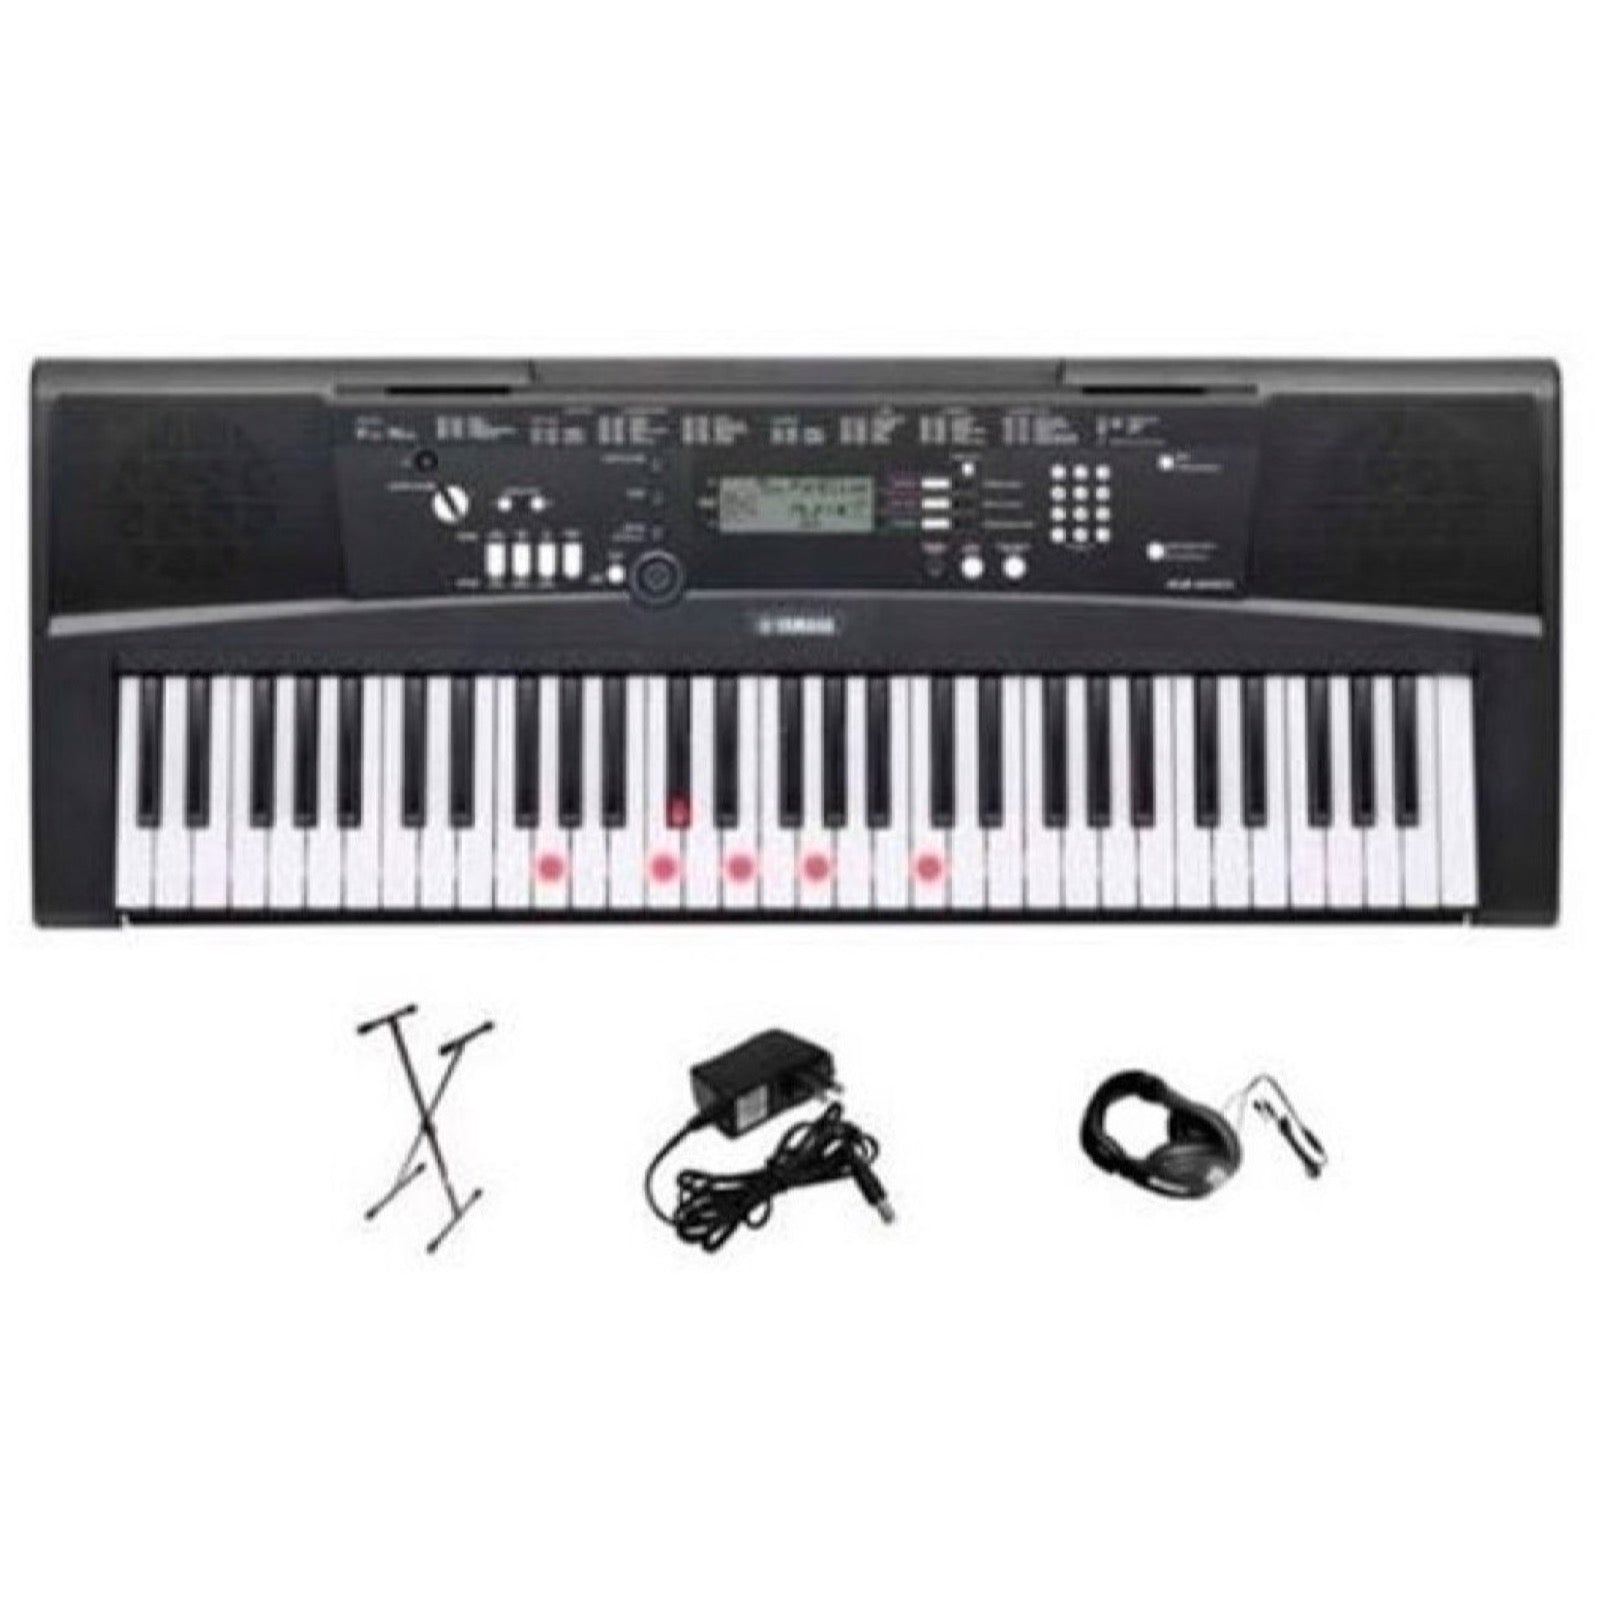 Yamaha EZ-220 Lighted Keyboard, 61-Key, Premium Pack, with Stand, Power Supply, and Headphones